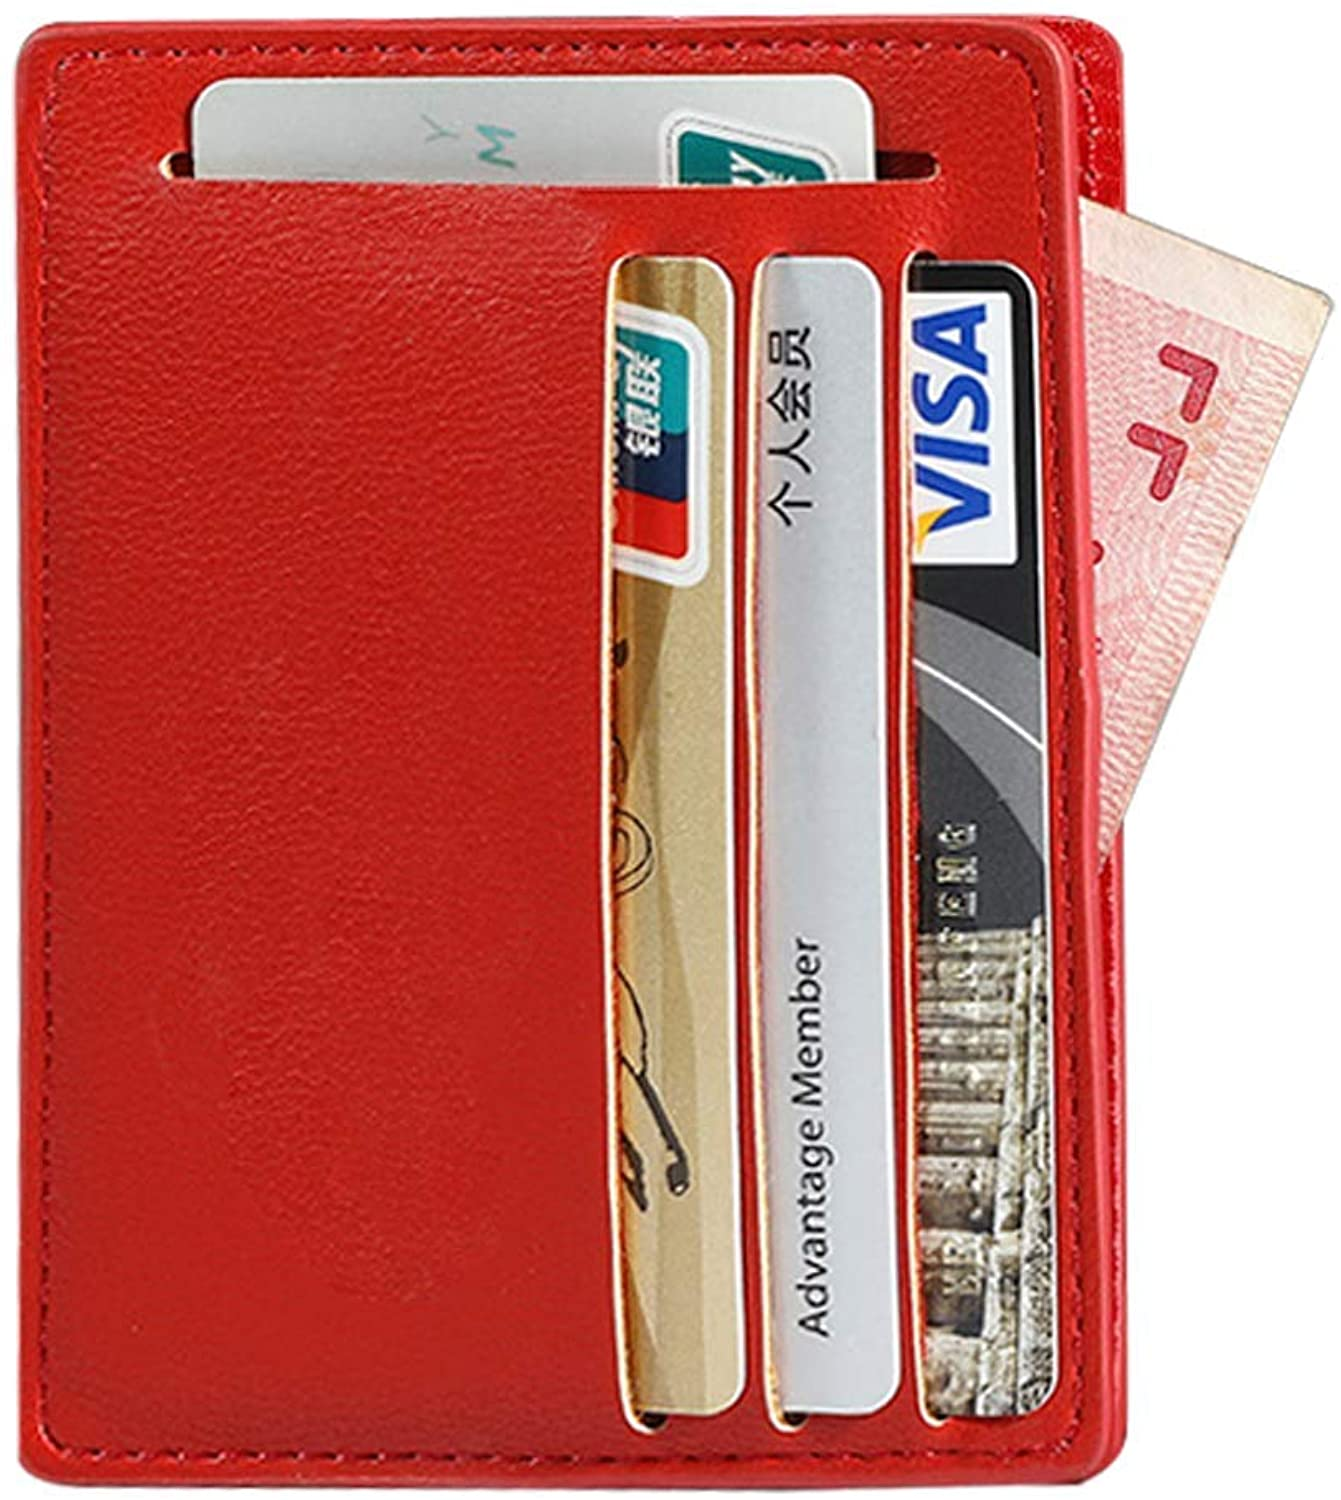 Credit Card Holder,Slim Wallet Automatic Pop up Metal Card Case for Men and Women